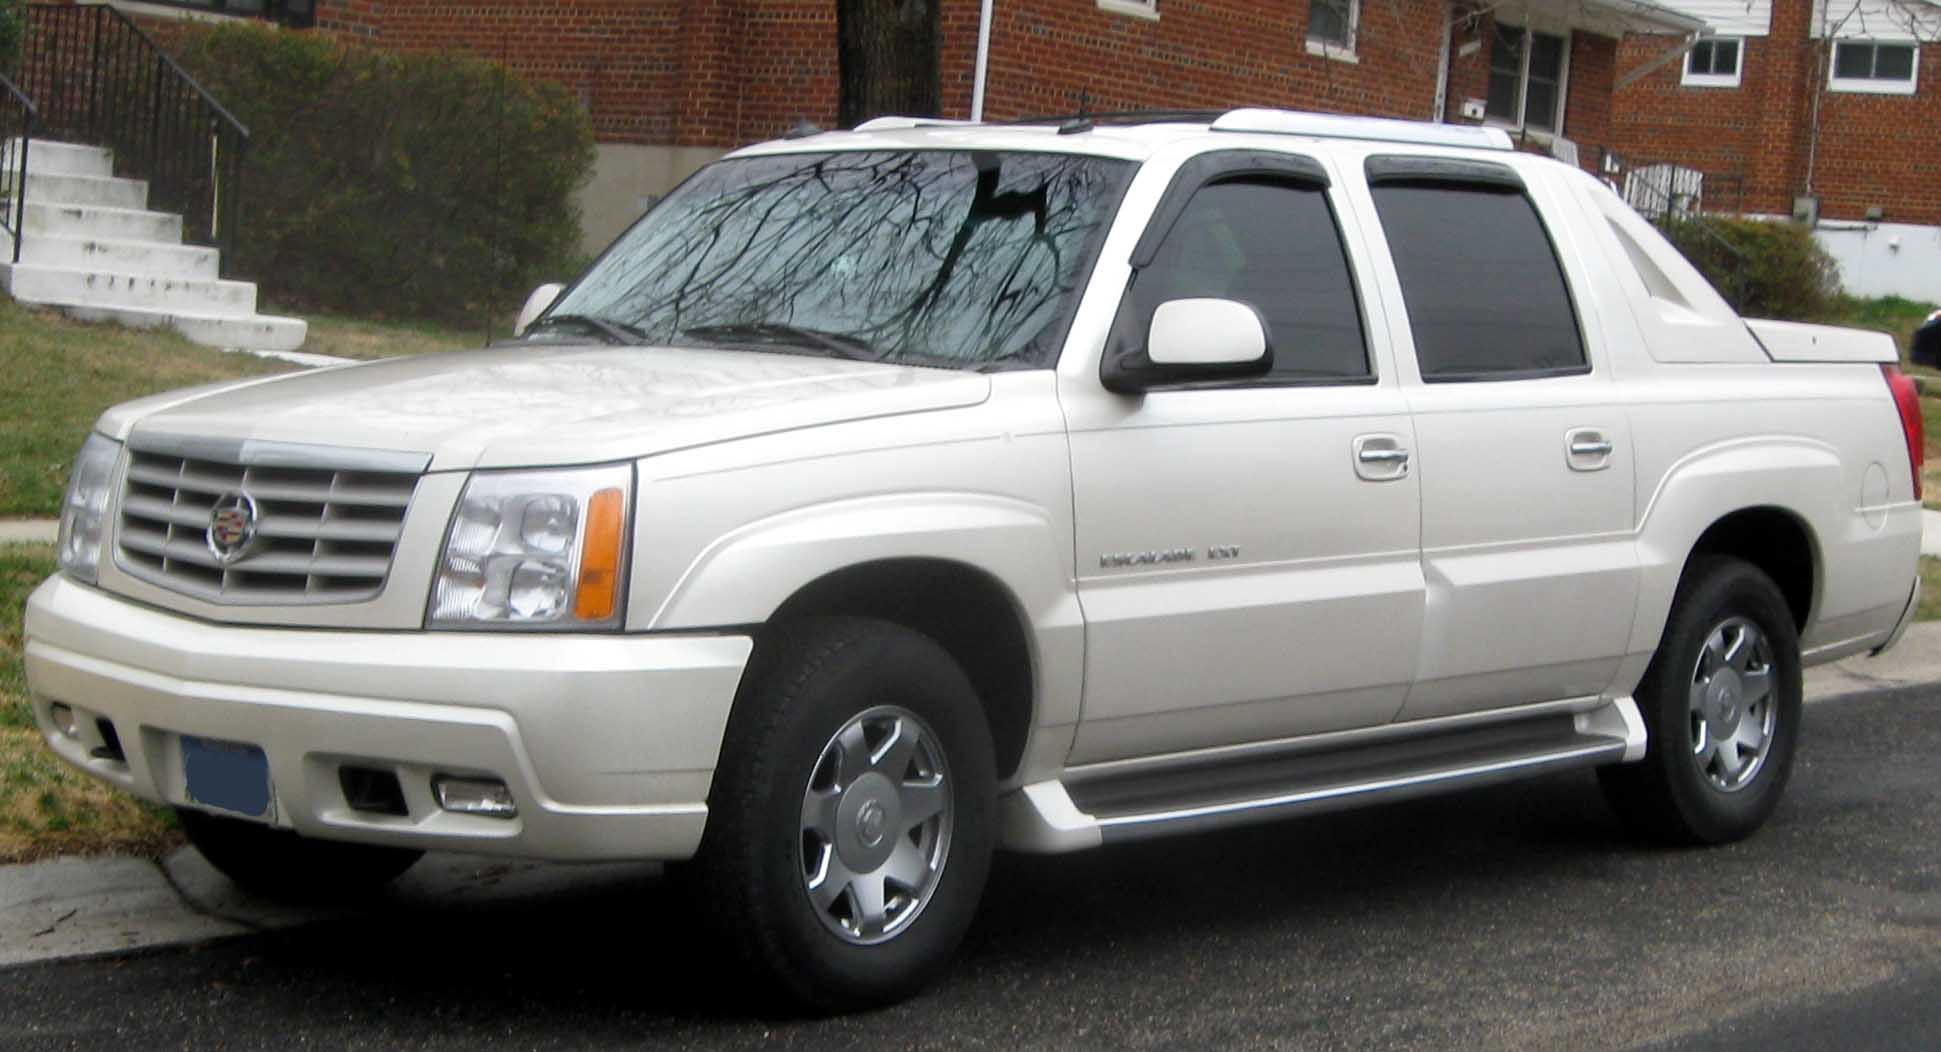 2006 Cadillac Escalade EXT Owners Manual